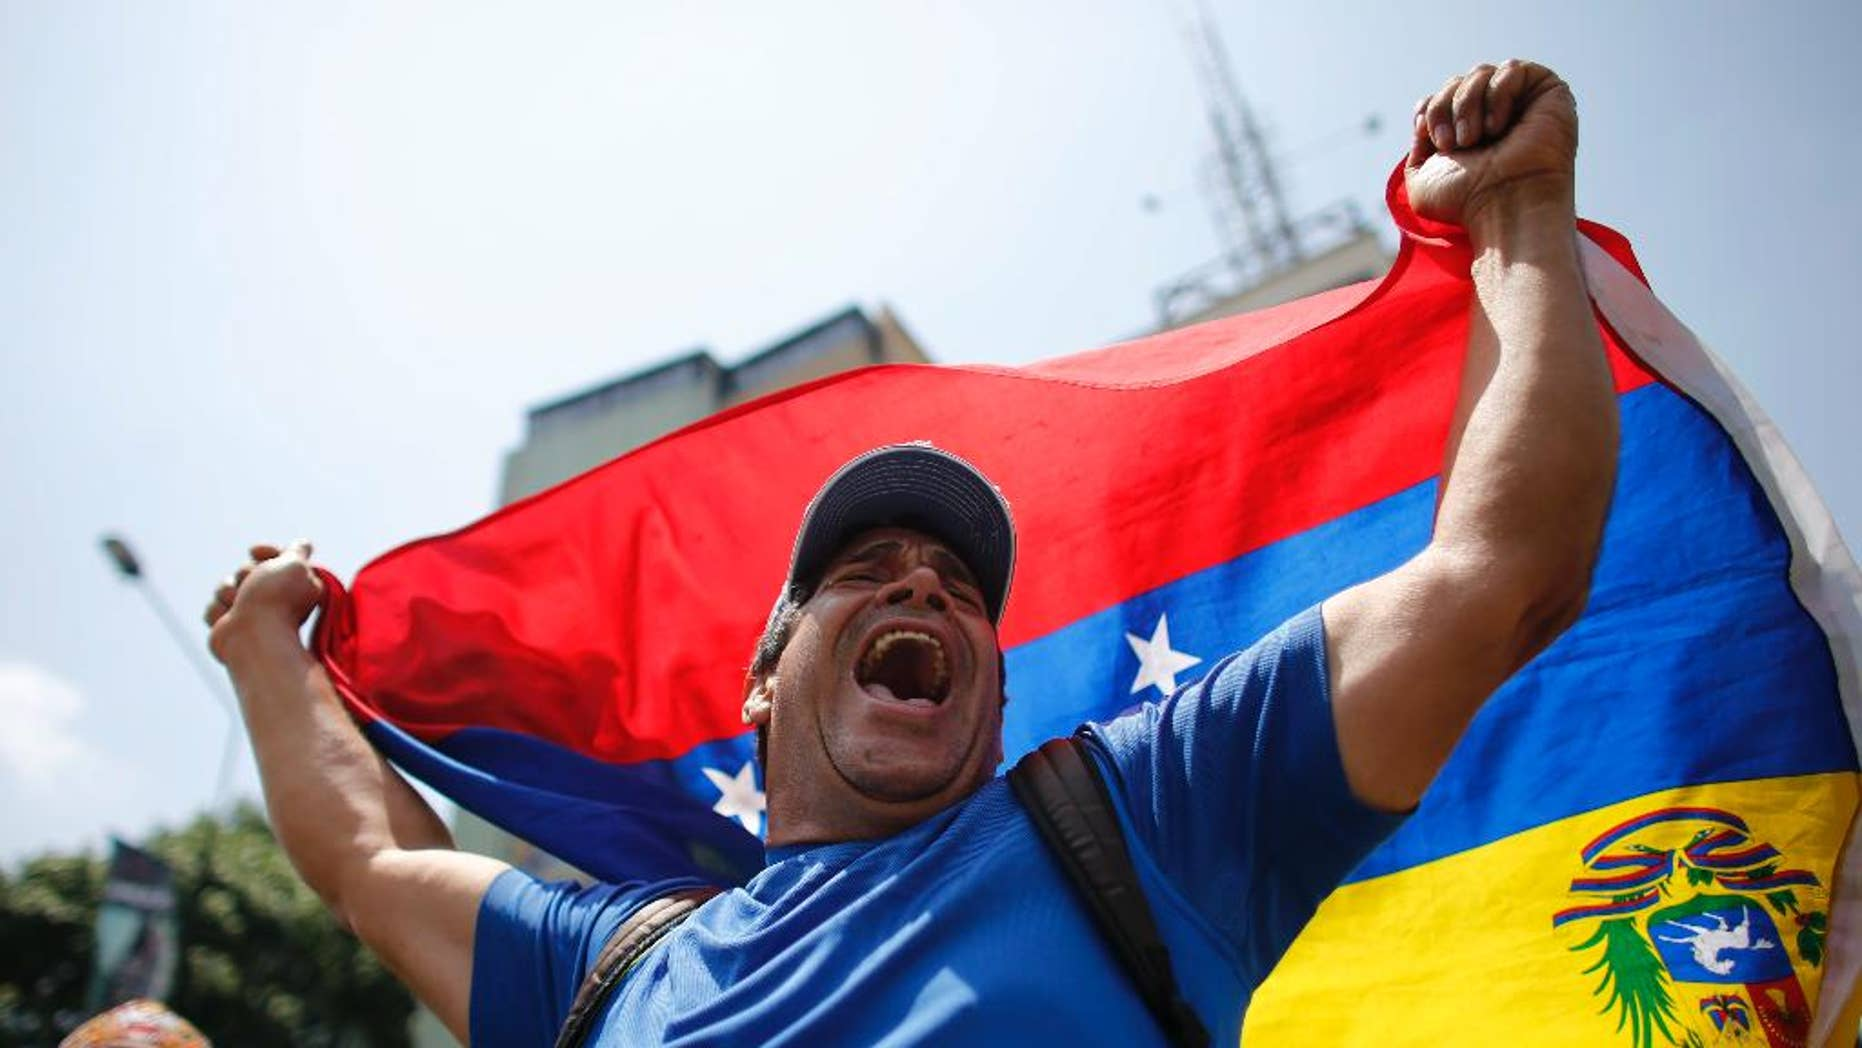 A man shouts anti-government slogans during a protest in Caracas, Venezuela, Thursday, April 20, 2017. Venezuela's opposition is calling for another day of protests against President Maduro after mass demonstrations Wednesday resulted in two deaths. (AP Photo/Ariana Cubillos)